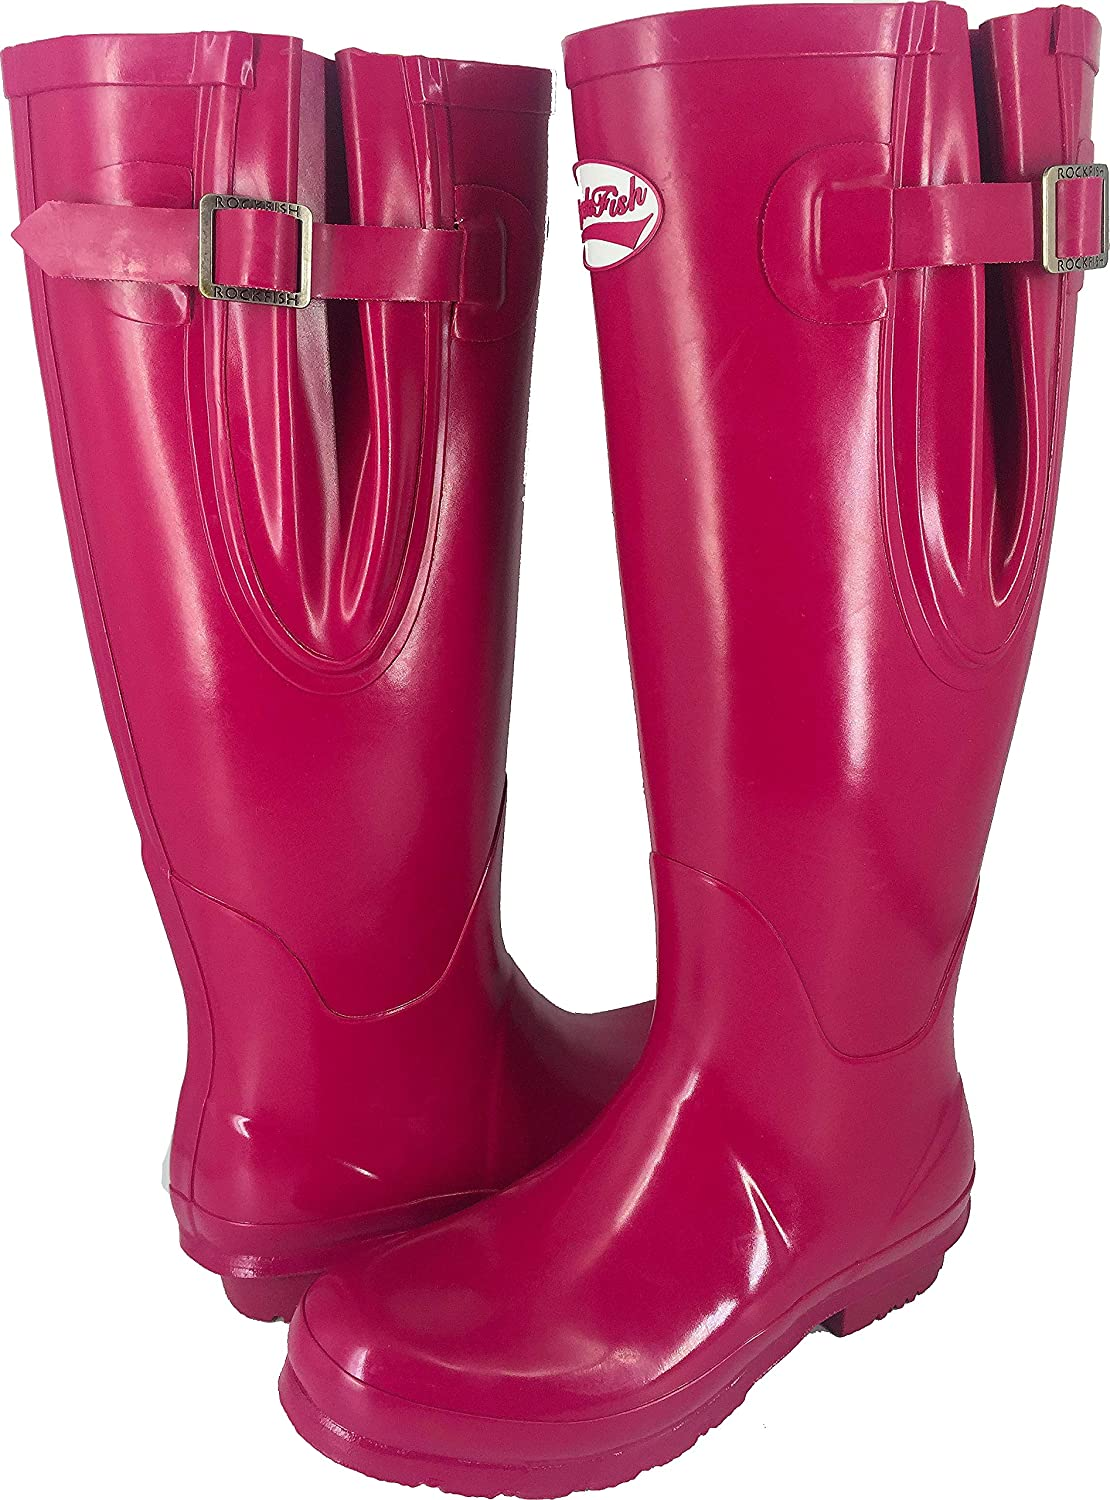 Rockfish AWARD WINNING Stiefel, Ladies Wellies, Magenta, Gloss Gloss Gloss Finish - STANDARD OR EXTRA WIDE CALF FIT (UP TO 45CMS), Natural Rubber - Adjustable Inc da9dc4